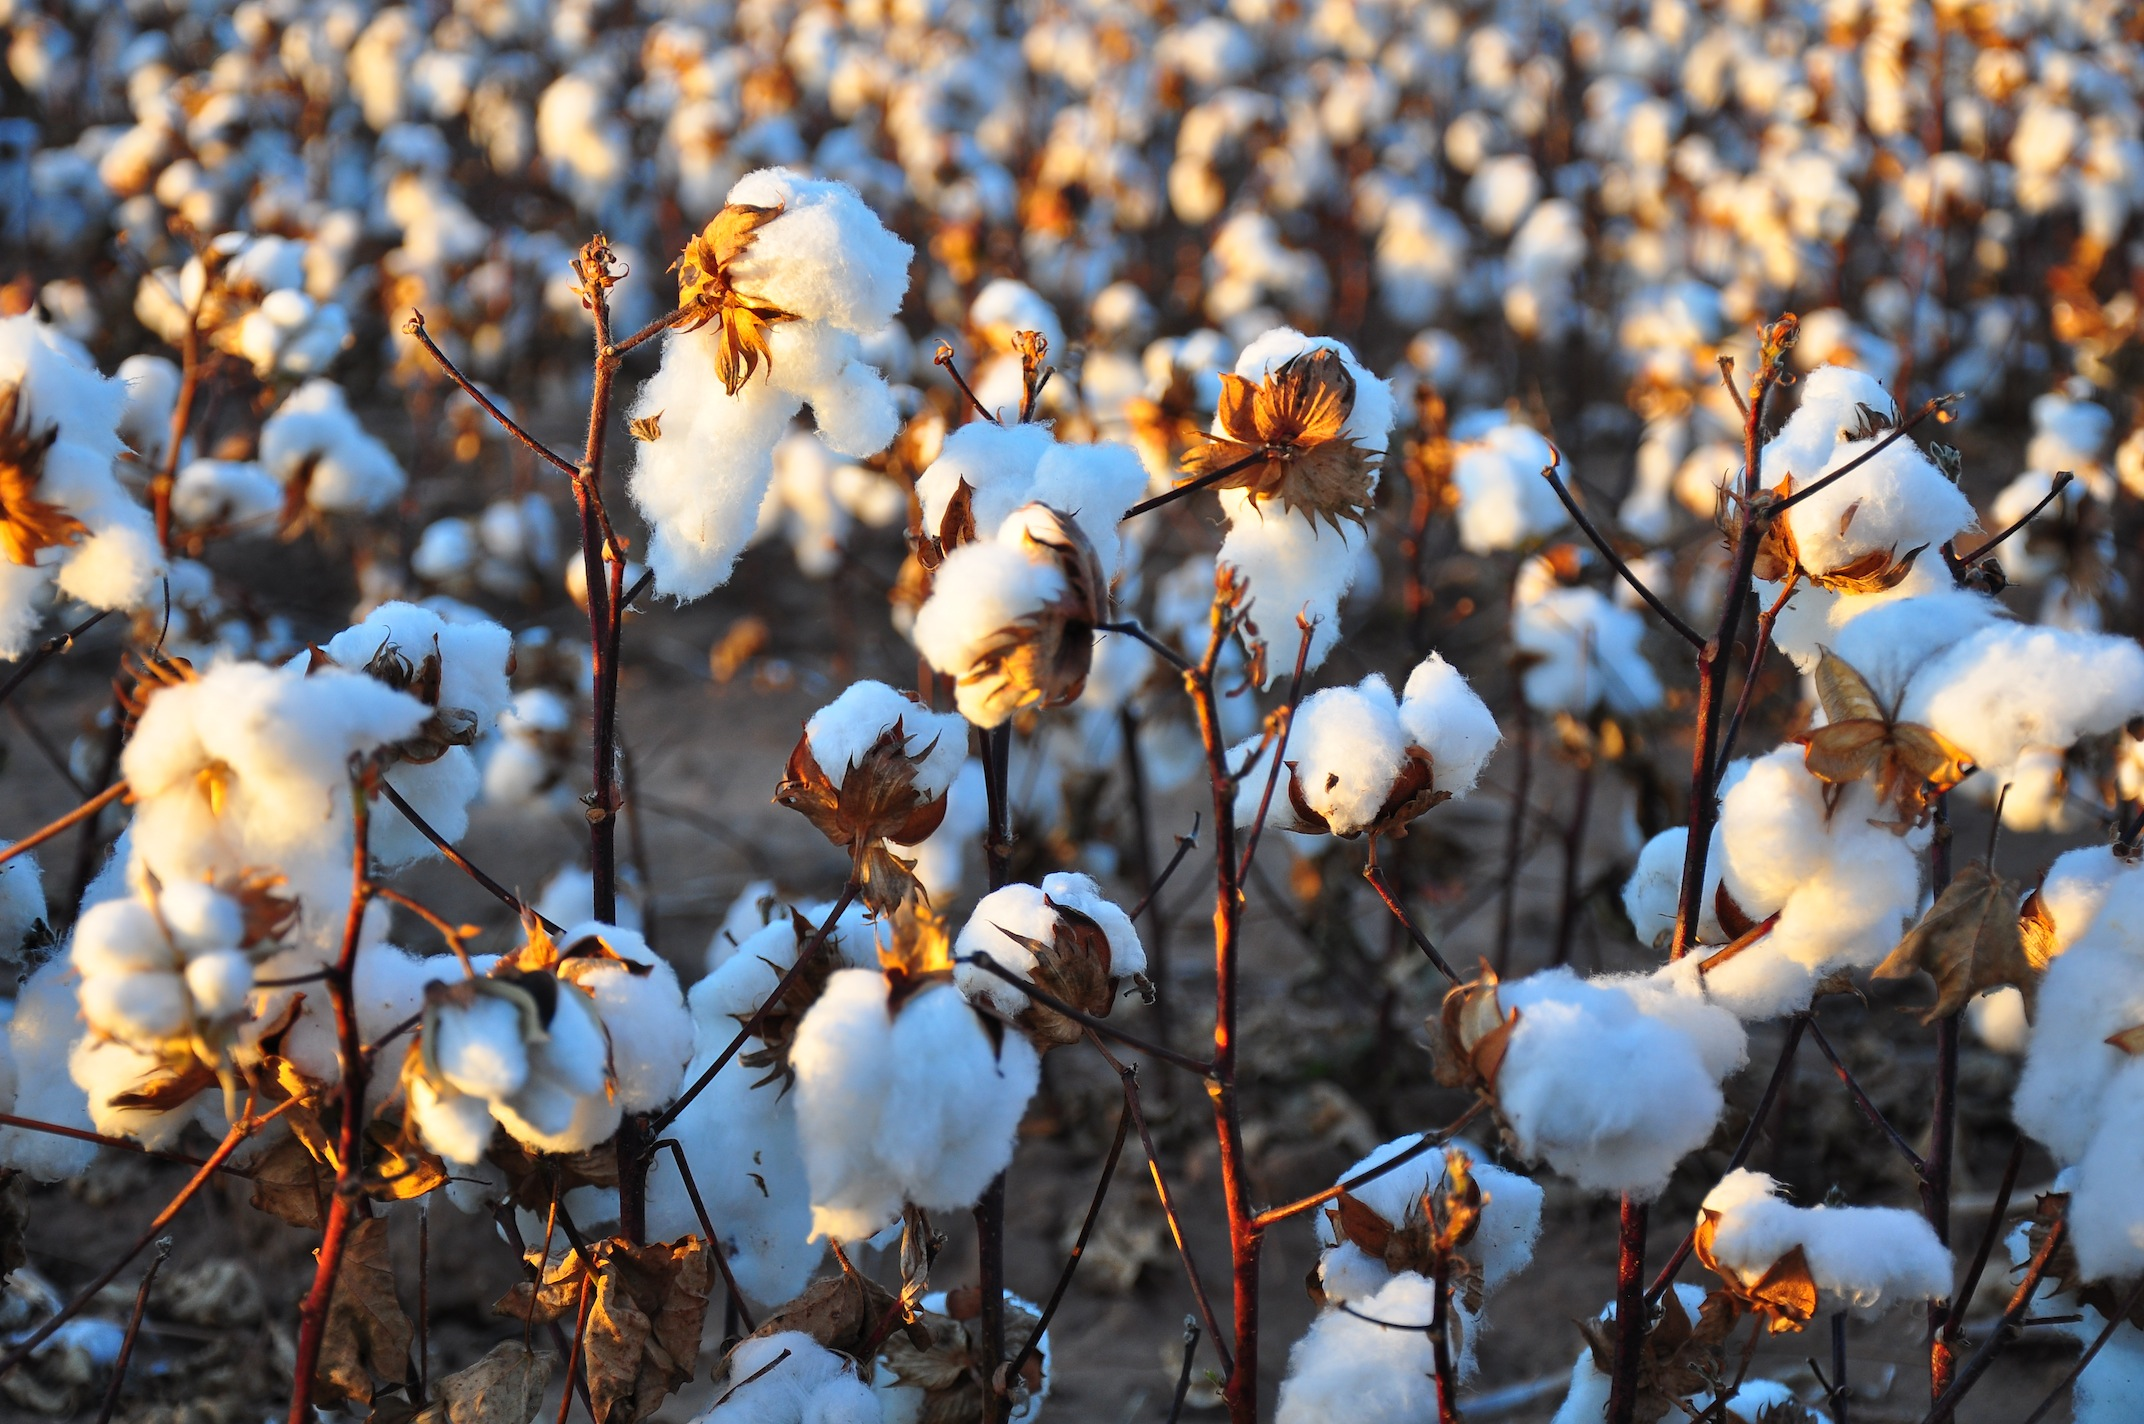 Although cotton is an enormously important commodity throughout the world, most people in developing countries receive a low price for their cotton. The top ten Cotton producers in the world are: China, India, United States, Pakistan, Brazil, Uzbekistan, Australia, Turkey, Turkmenistan,and Syria.